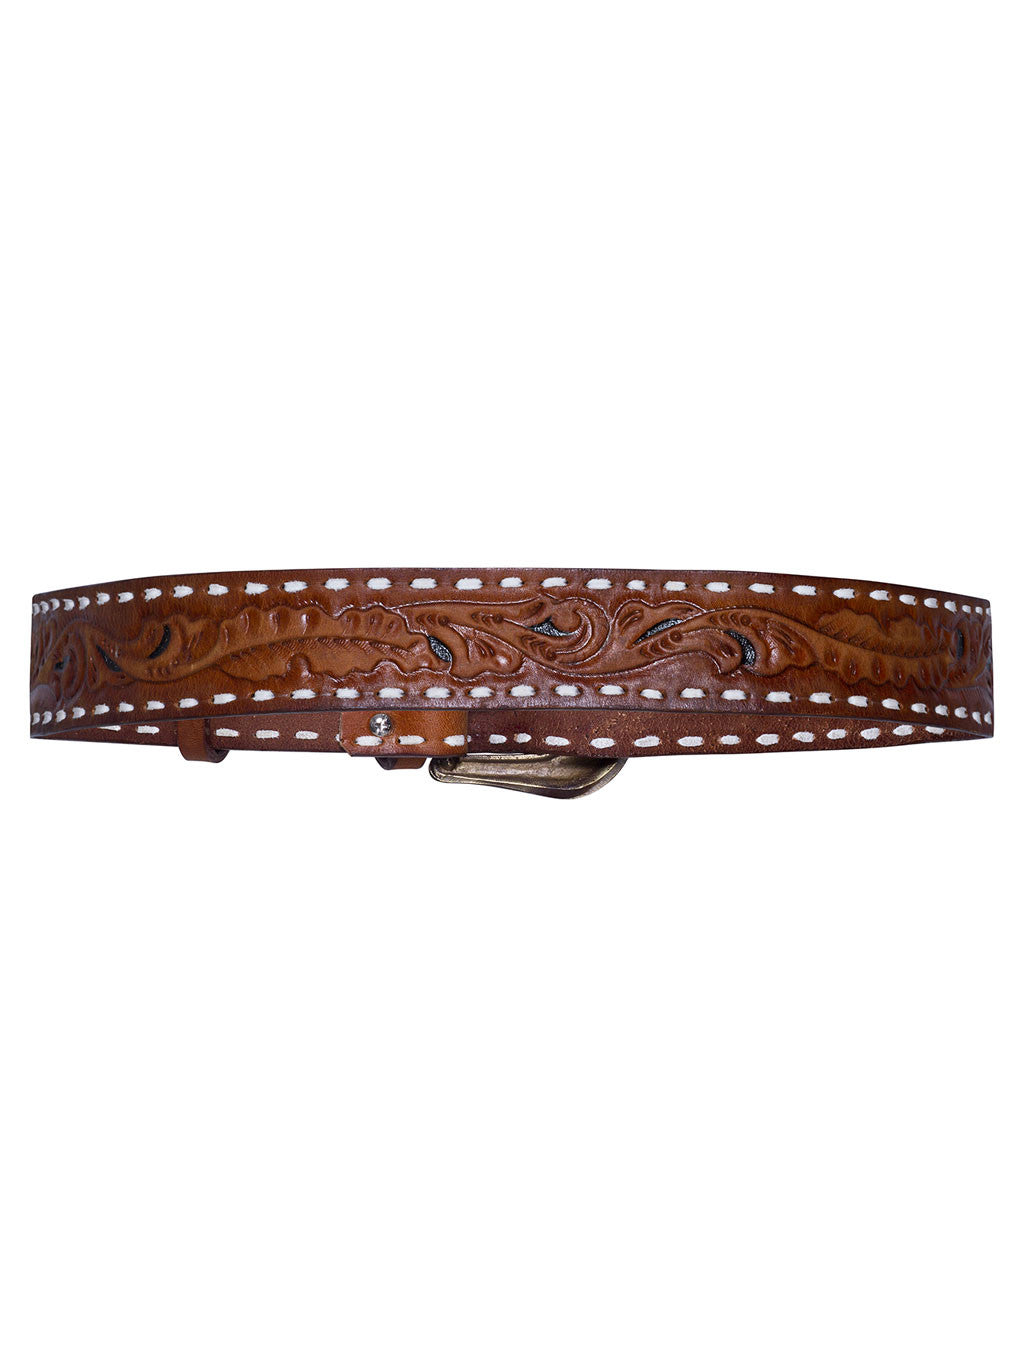 LOVE AFFAIR LEATHER BELT - Little Joe Woman by Gail Elliott E-Boutique  - 3